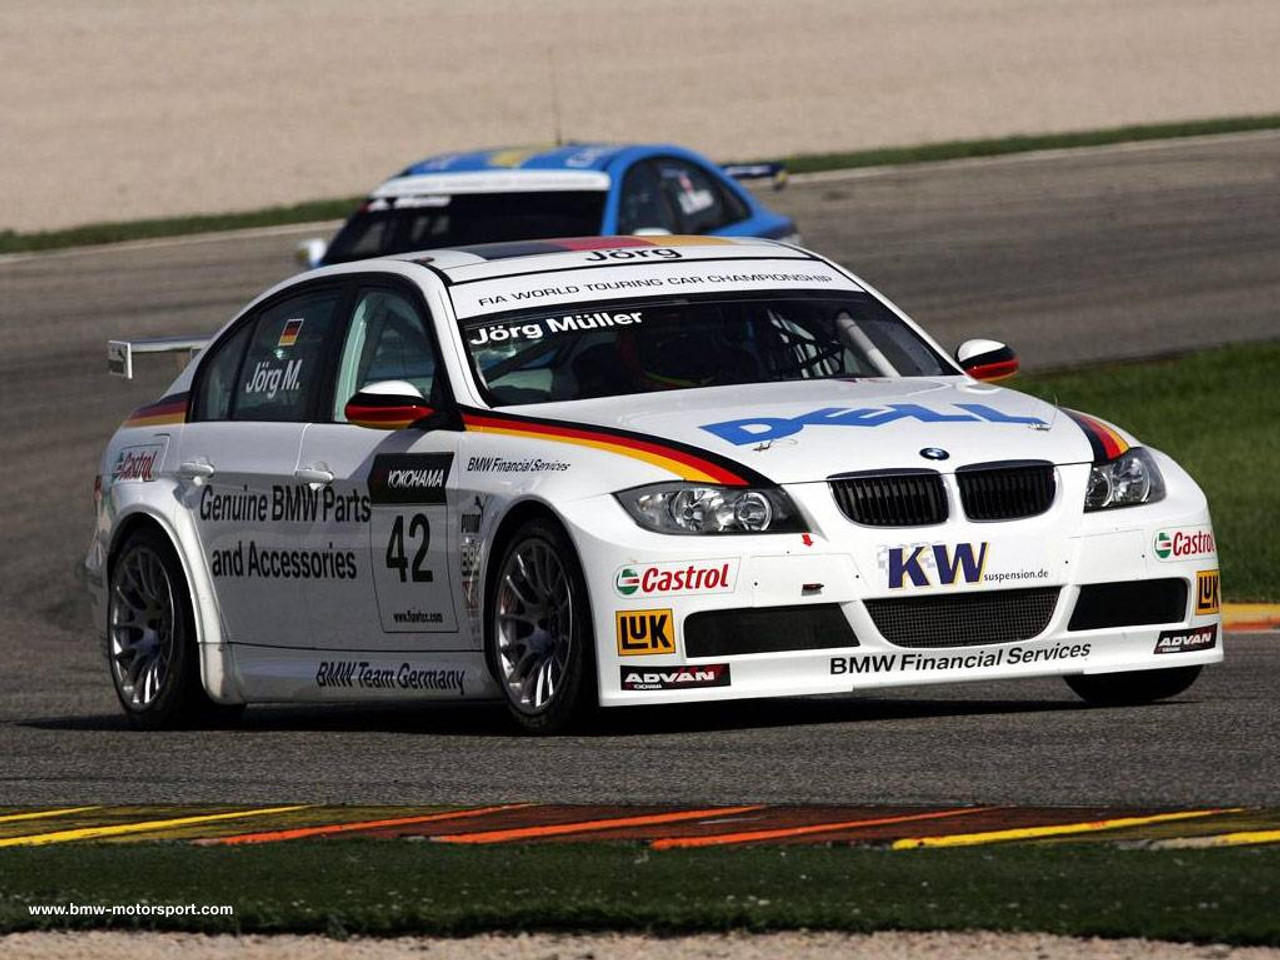 BMW WTCC 320i - Our Inspiration to develop this kit (reference only)